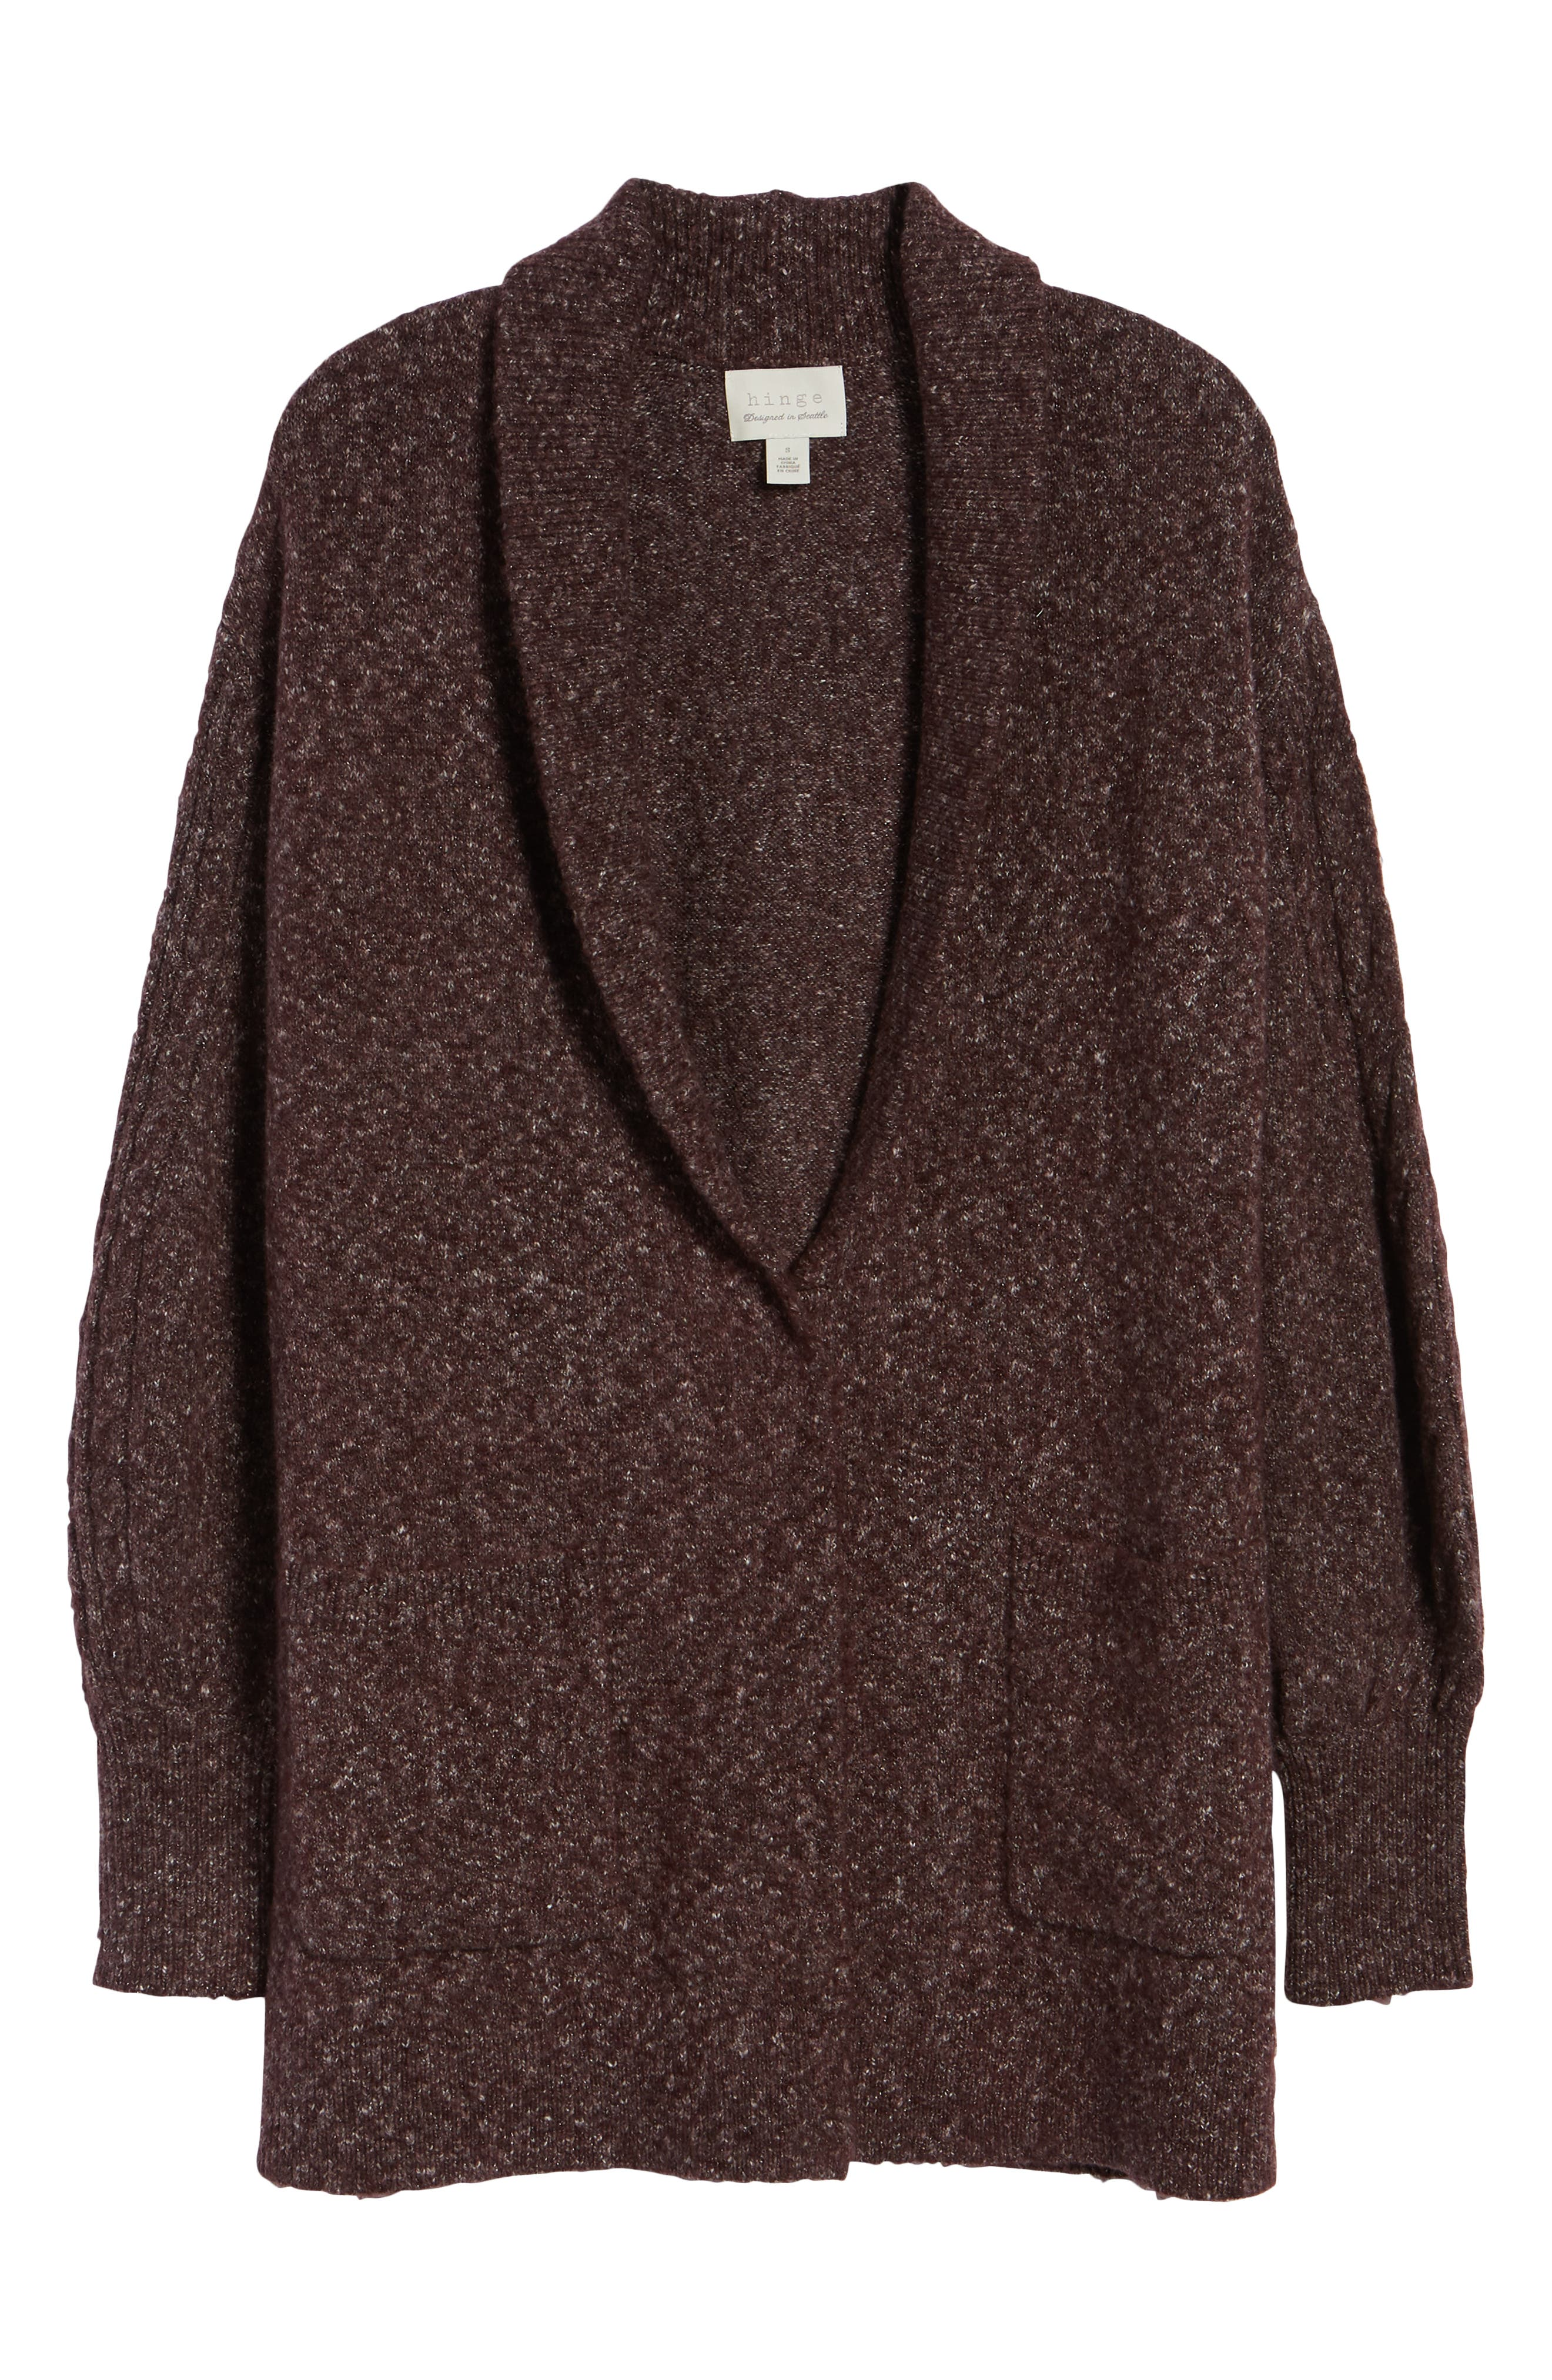 Longline Cardigan,                             Alternate thumbnail 6, color,                             BURGUNDY FUDGE